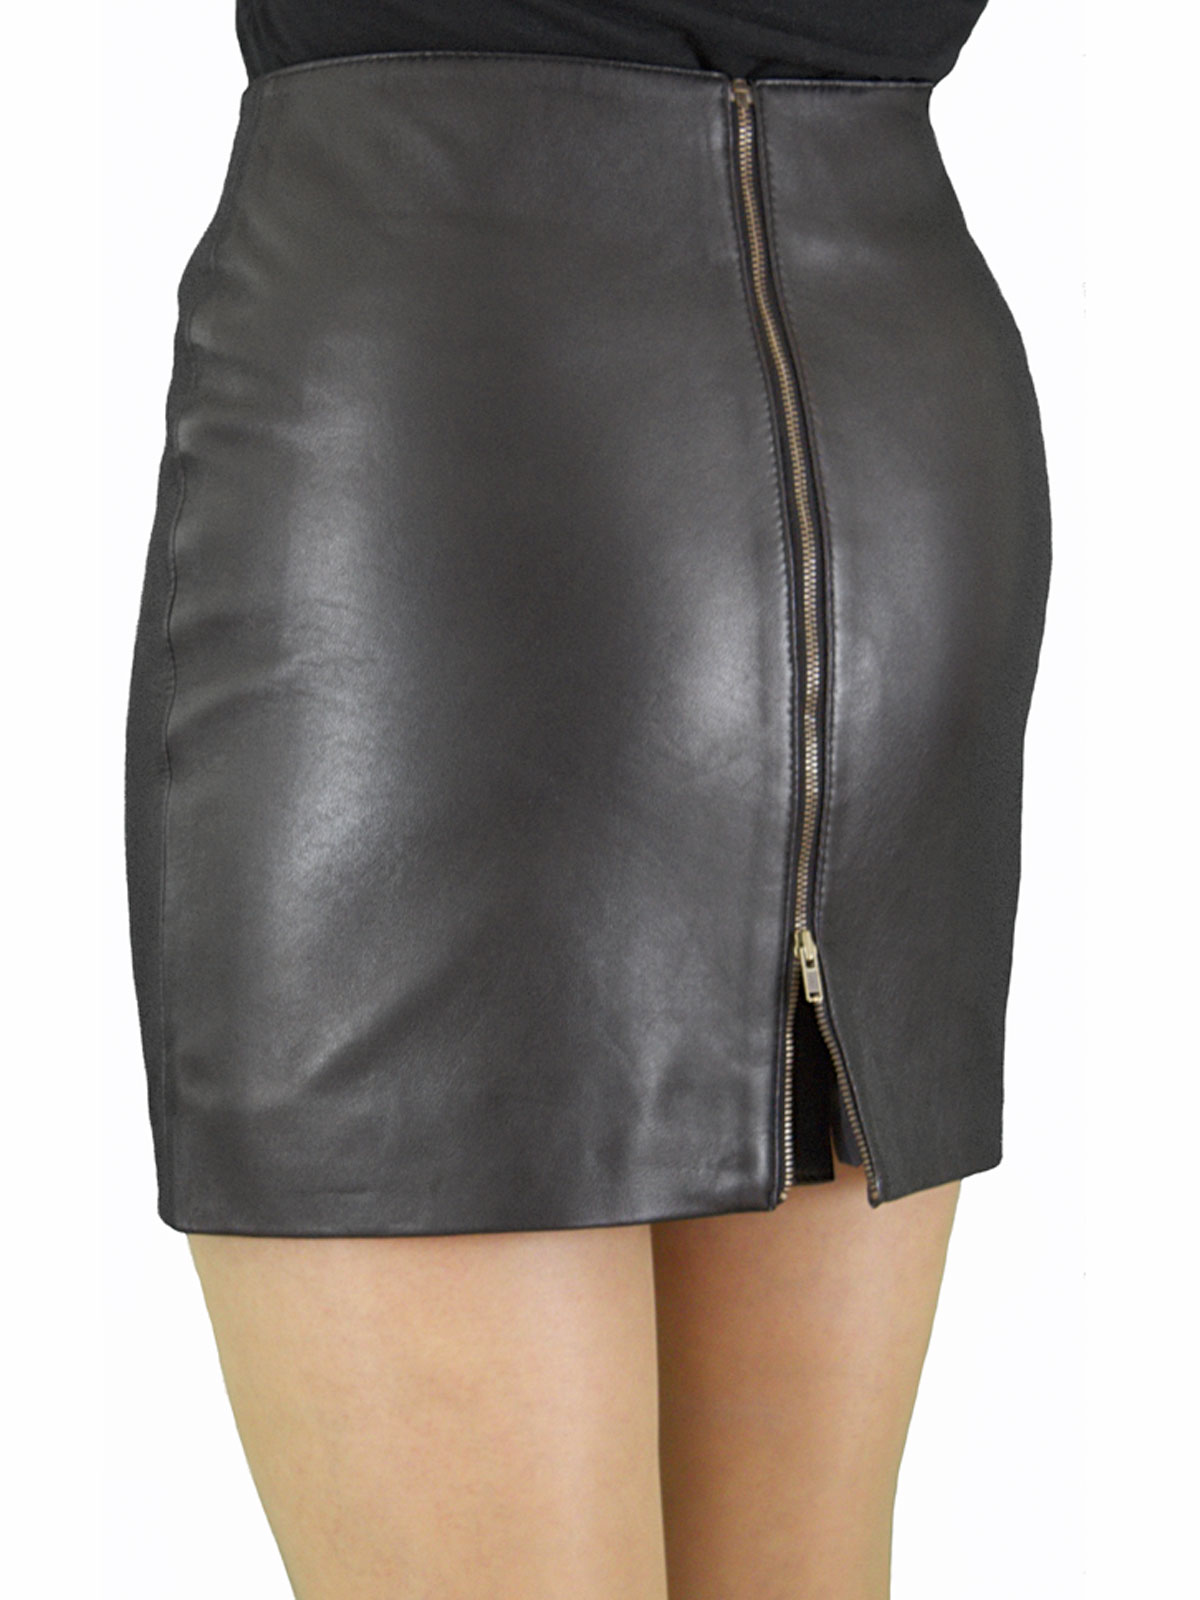 Black Leather Mini Skirt Uk - Dress Ala